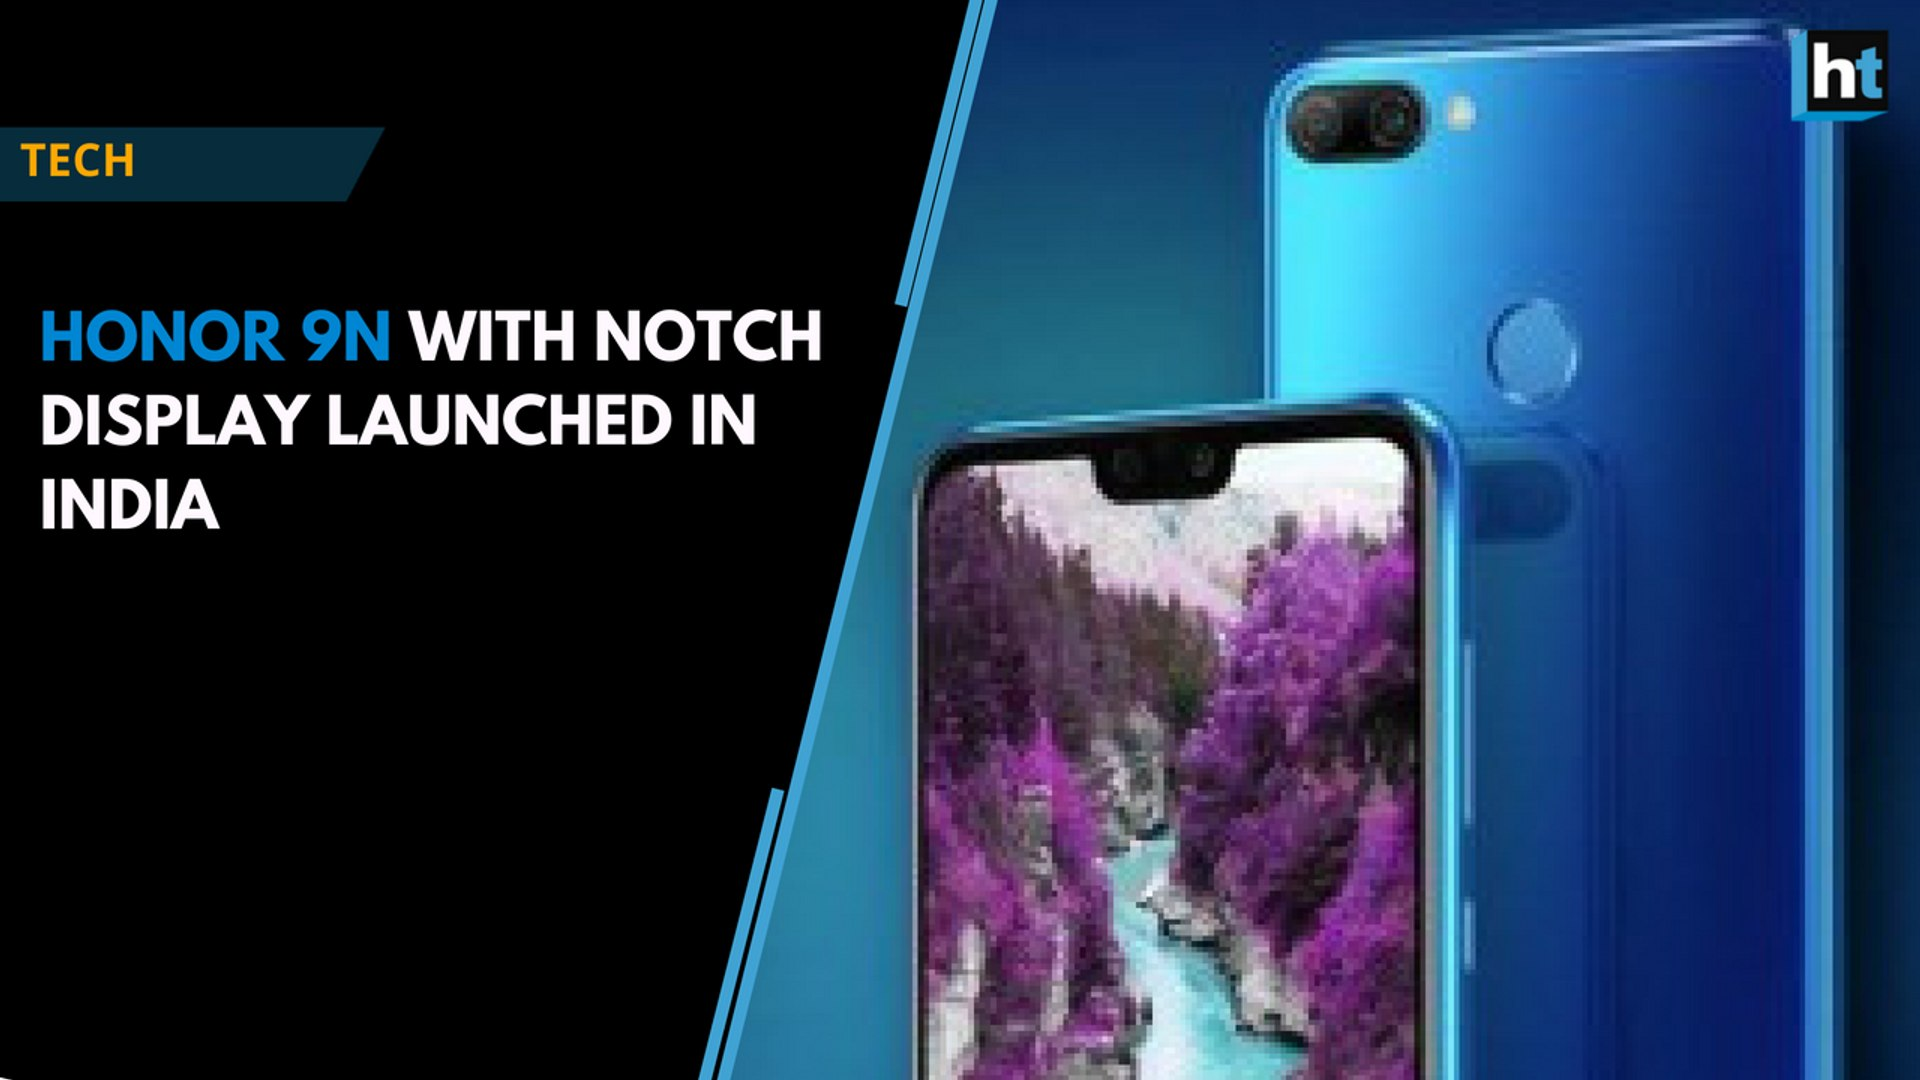 Honor 9N with notch display launched in India